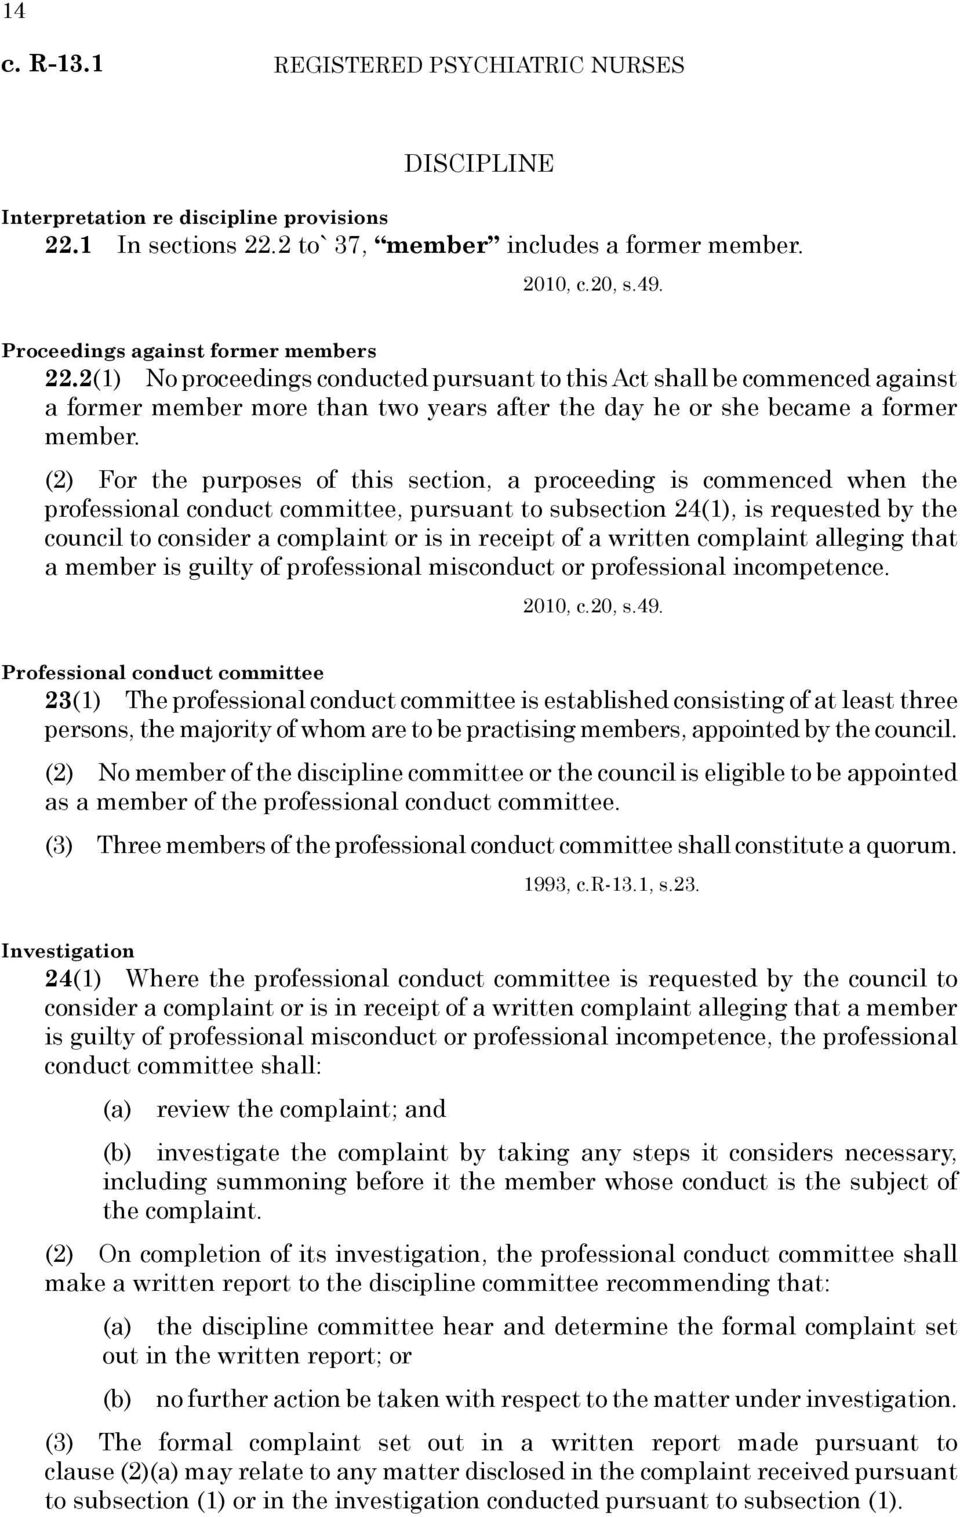 (2) For the purposes of this section, a proceeding is commenced when the professional conduct committee, pursuant to subsection 24(1), is requested by the council to consider a complaint or is in